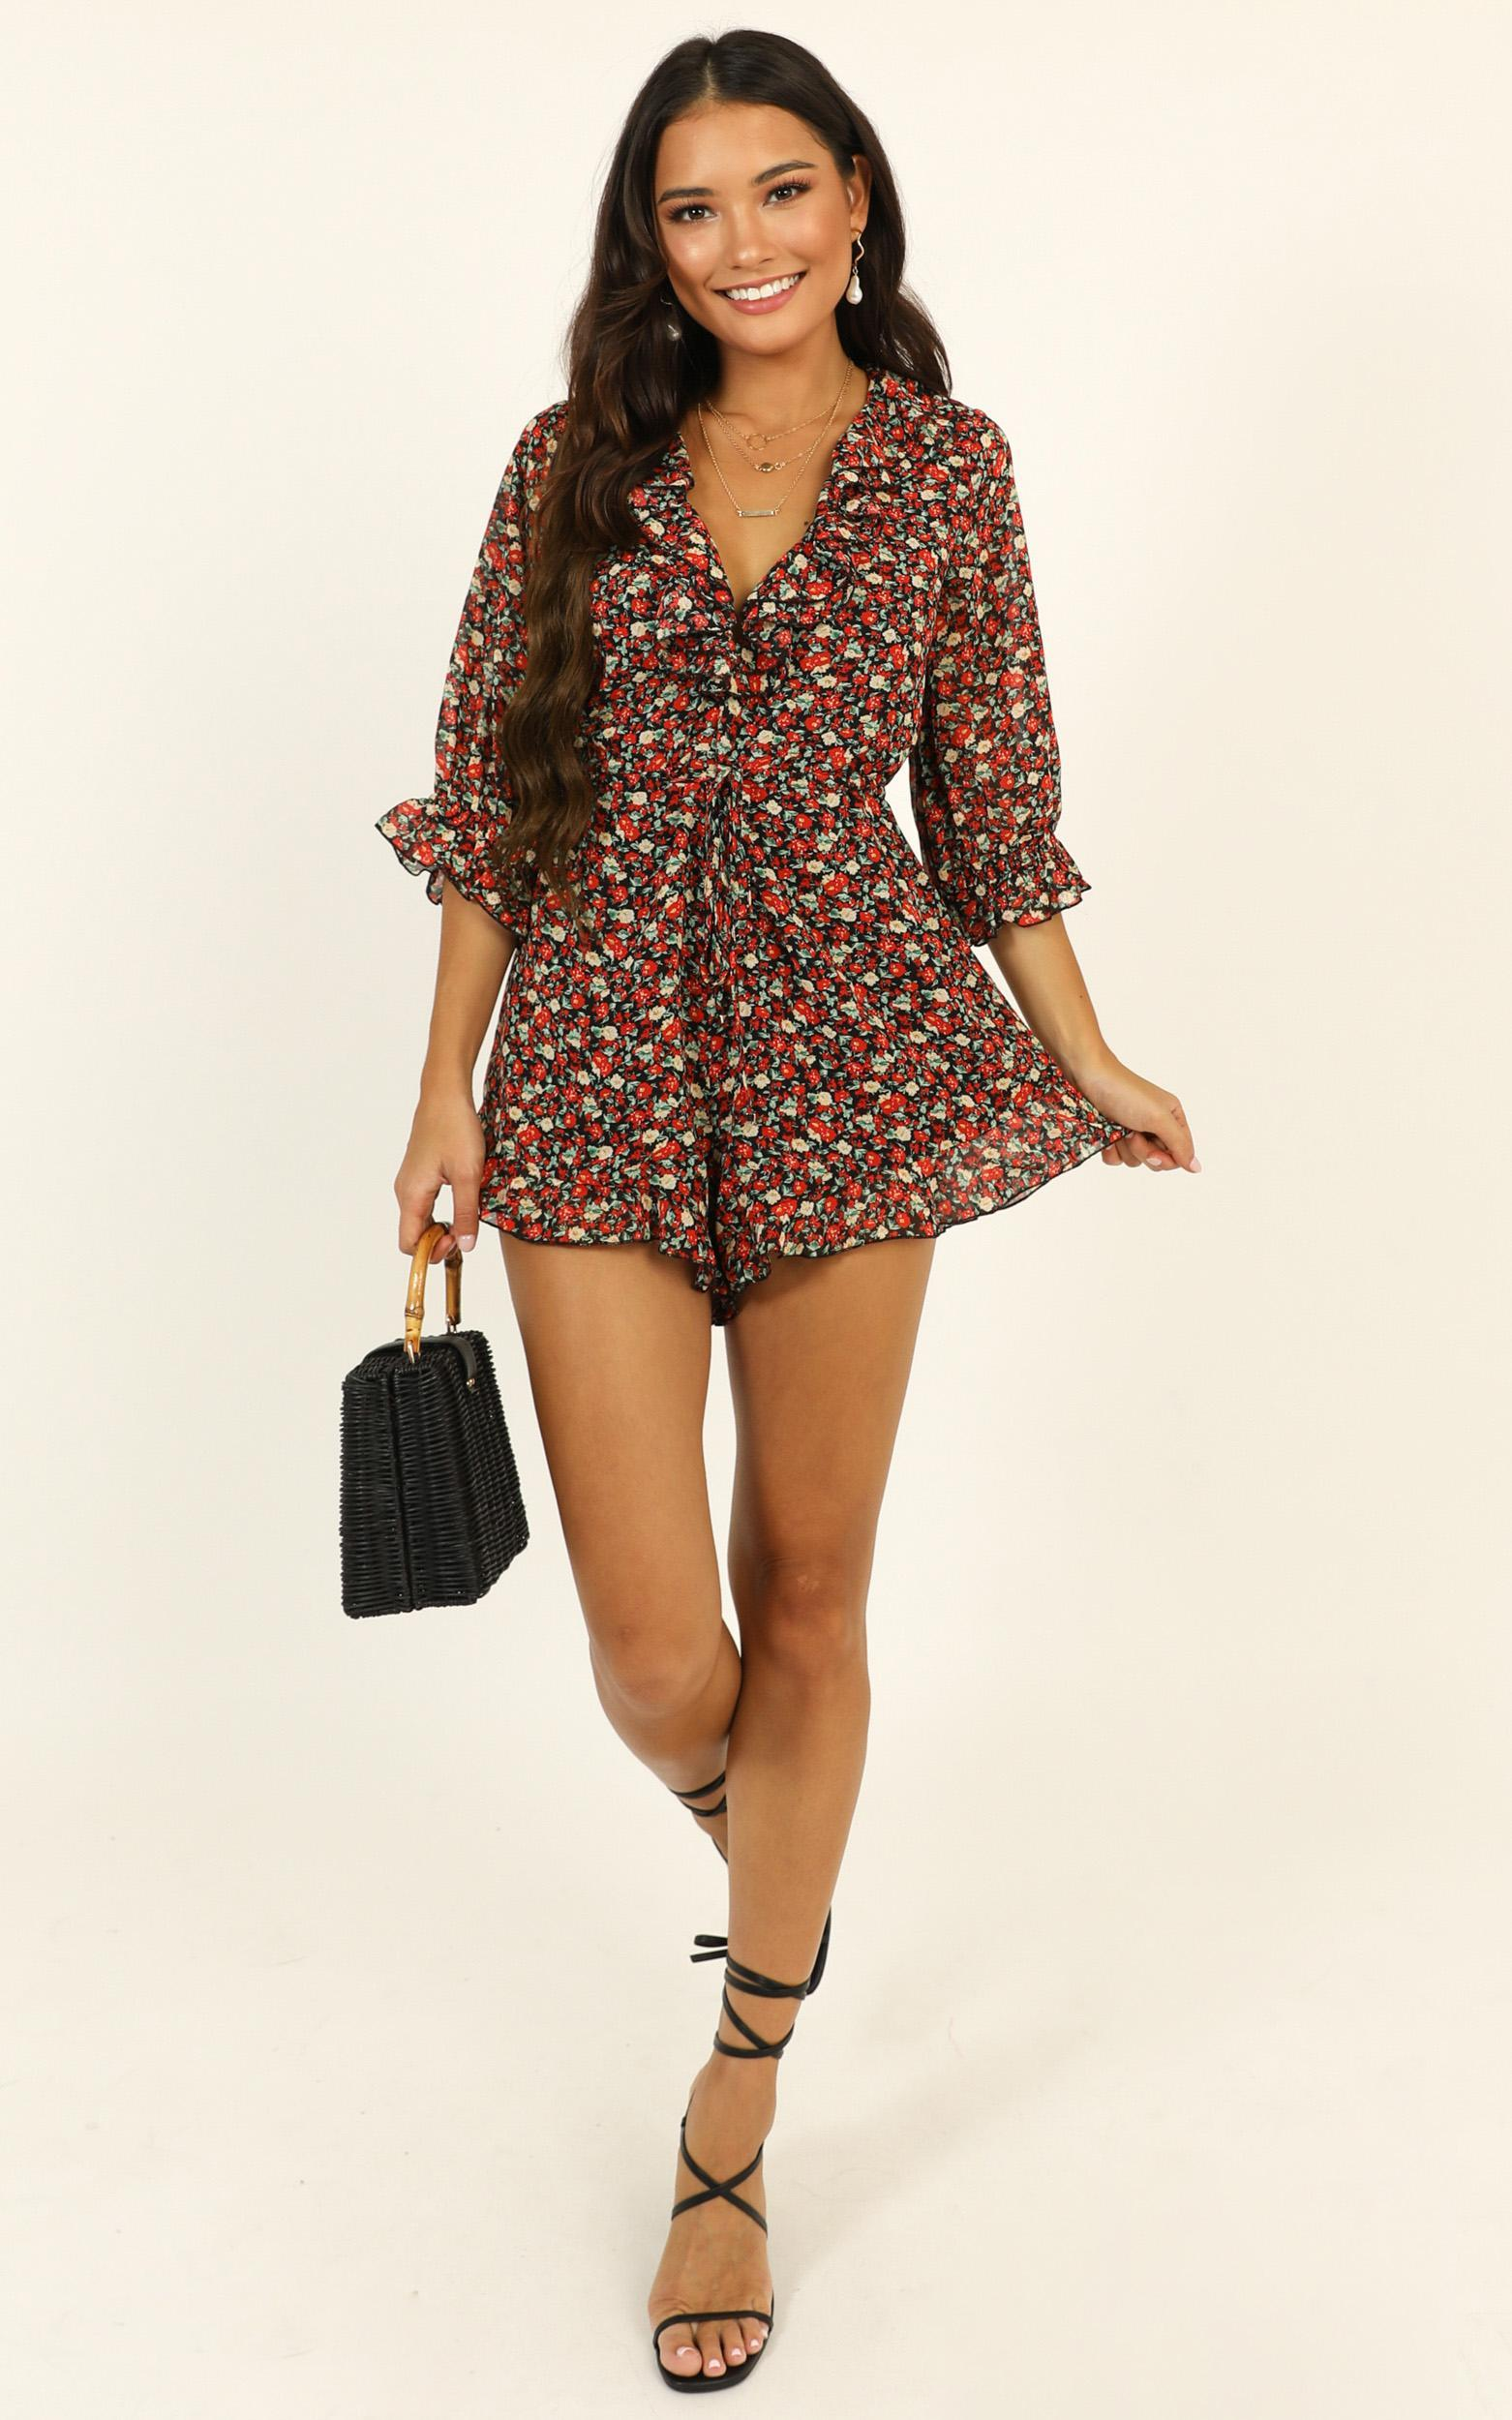 Full of Life Playsuit in black floral - 20 (XXXXL), Black, hi-res image number null